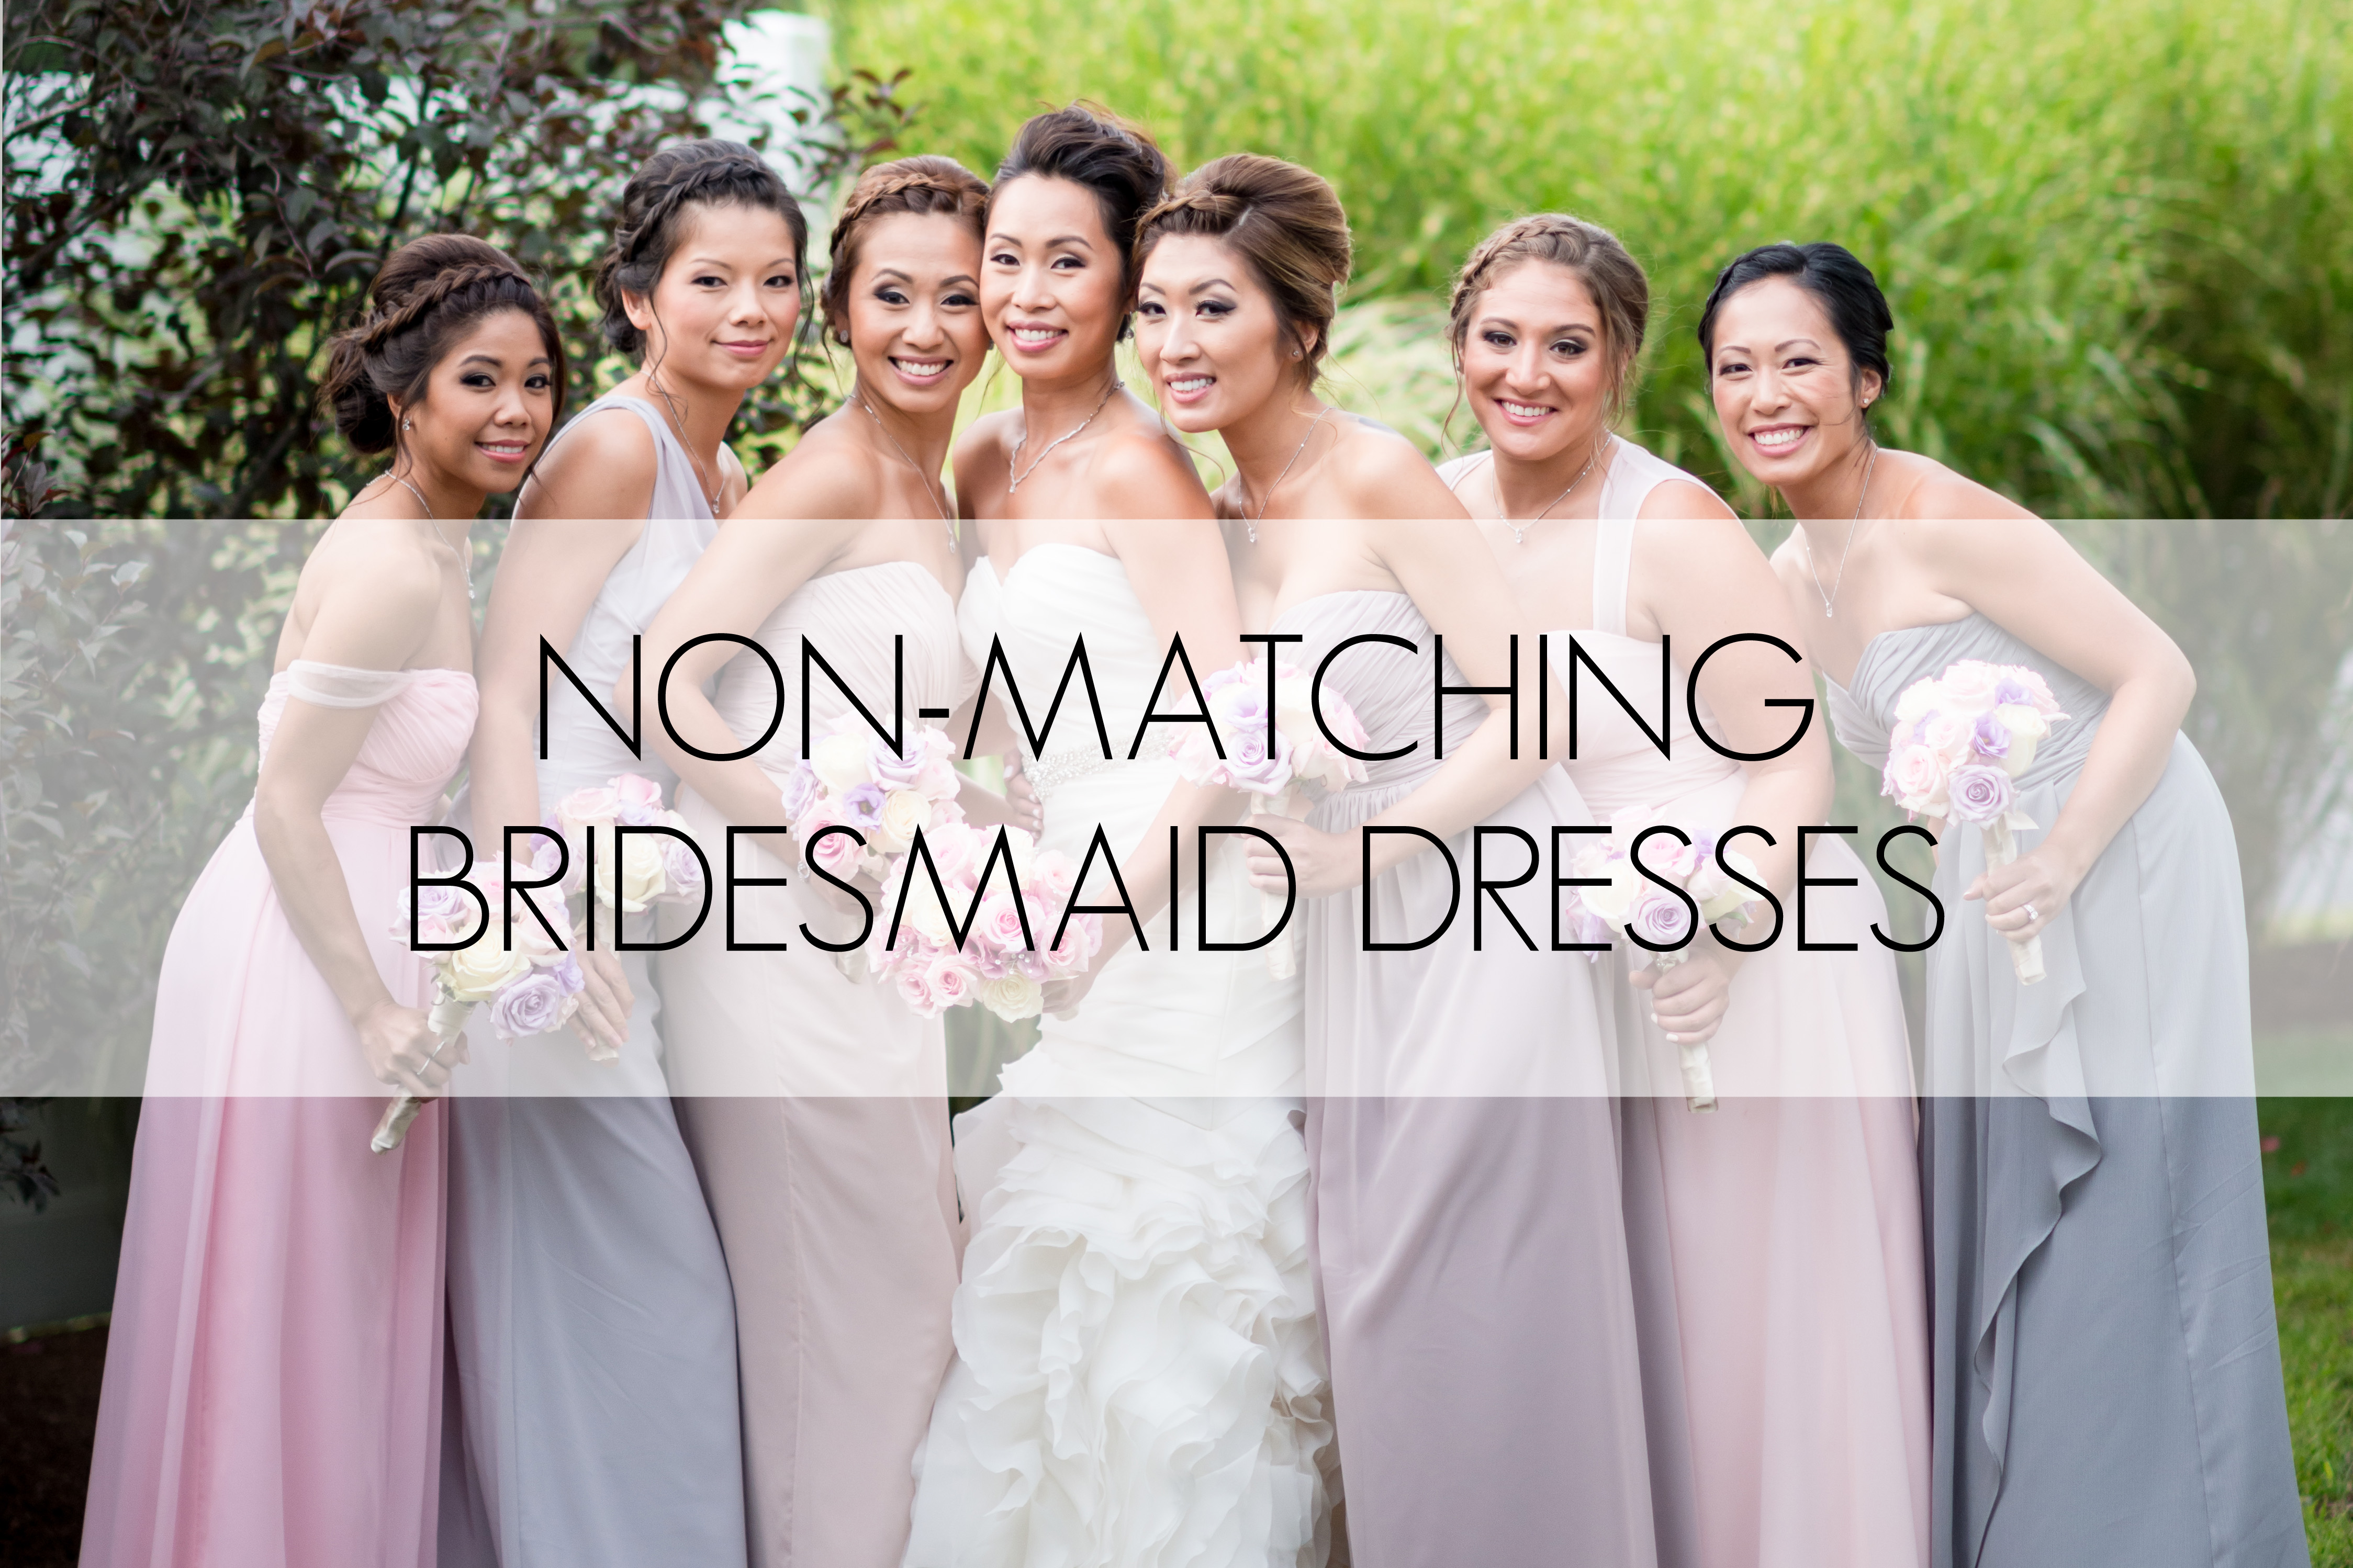 SEG_Blog Non-Matching Bridesmaid Dresses - FI